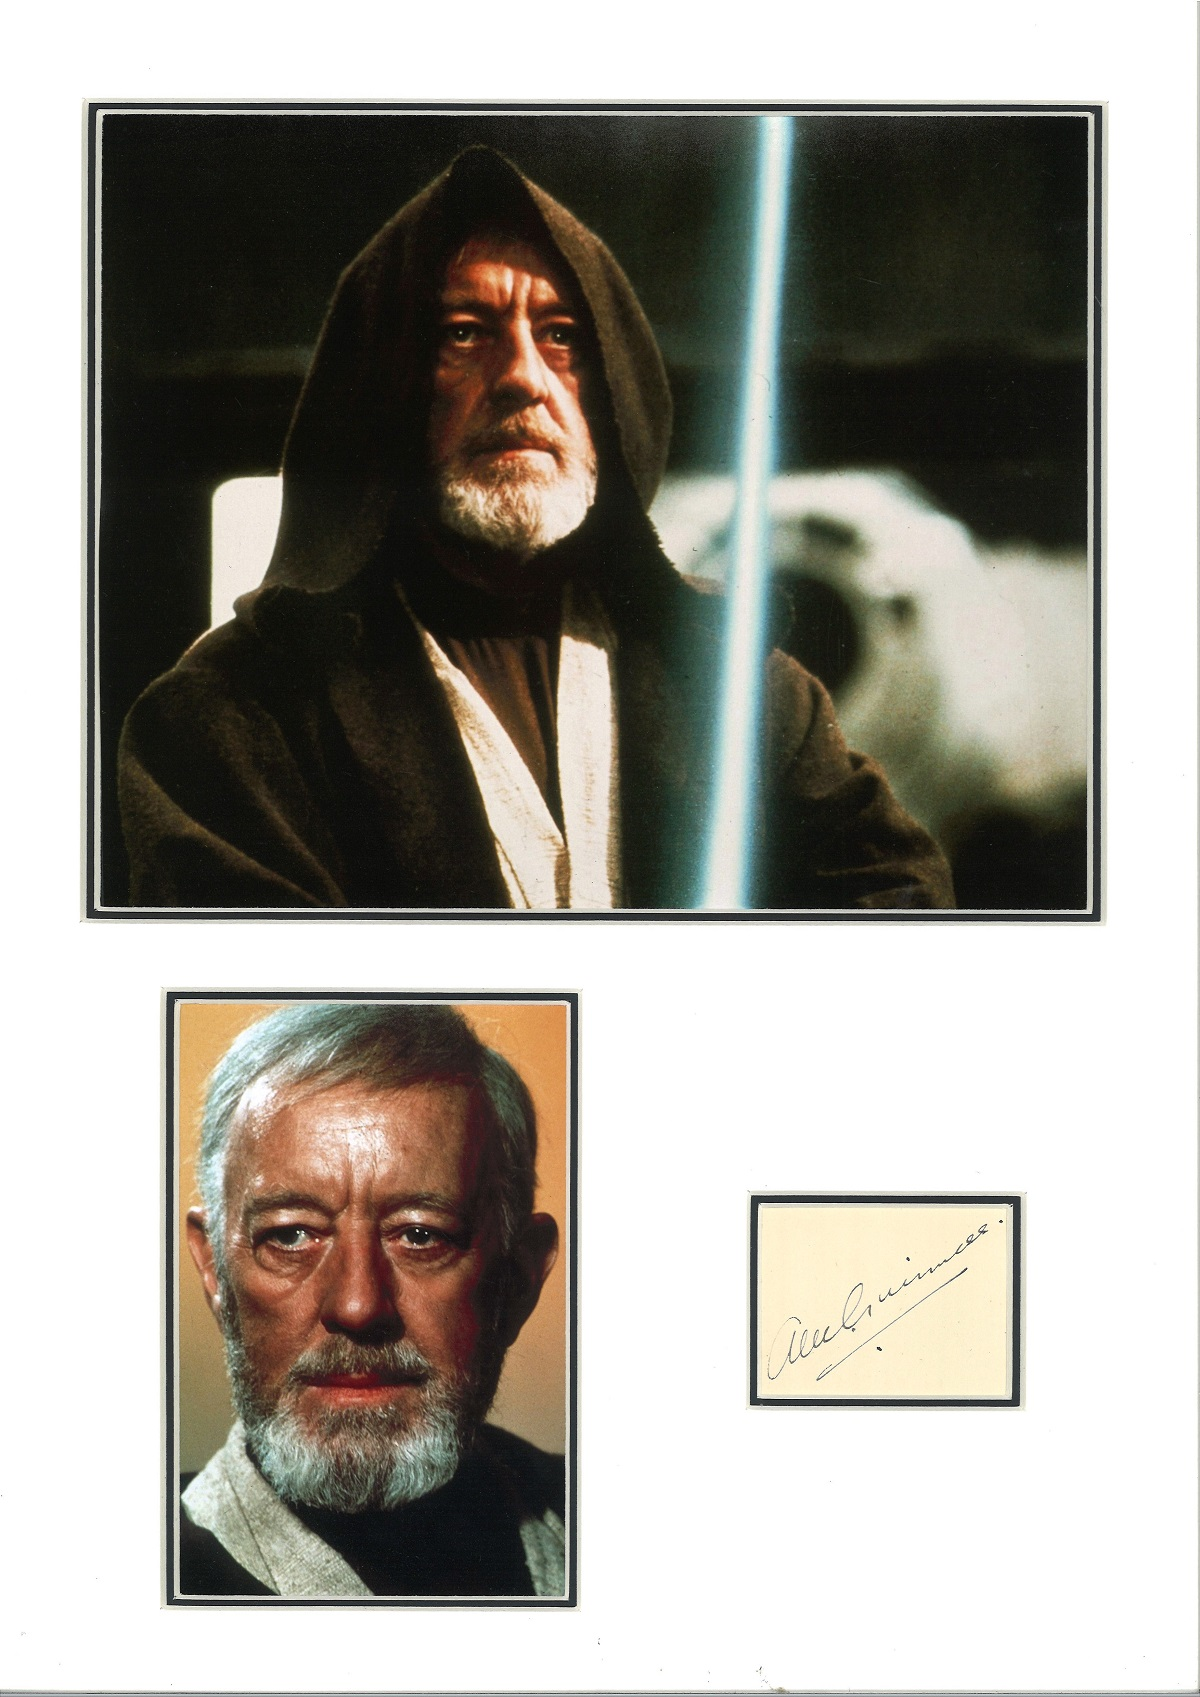 Alec Guinness 18x13 mounted signature piece includes two coloured photos pictured in his role as